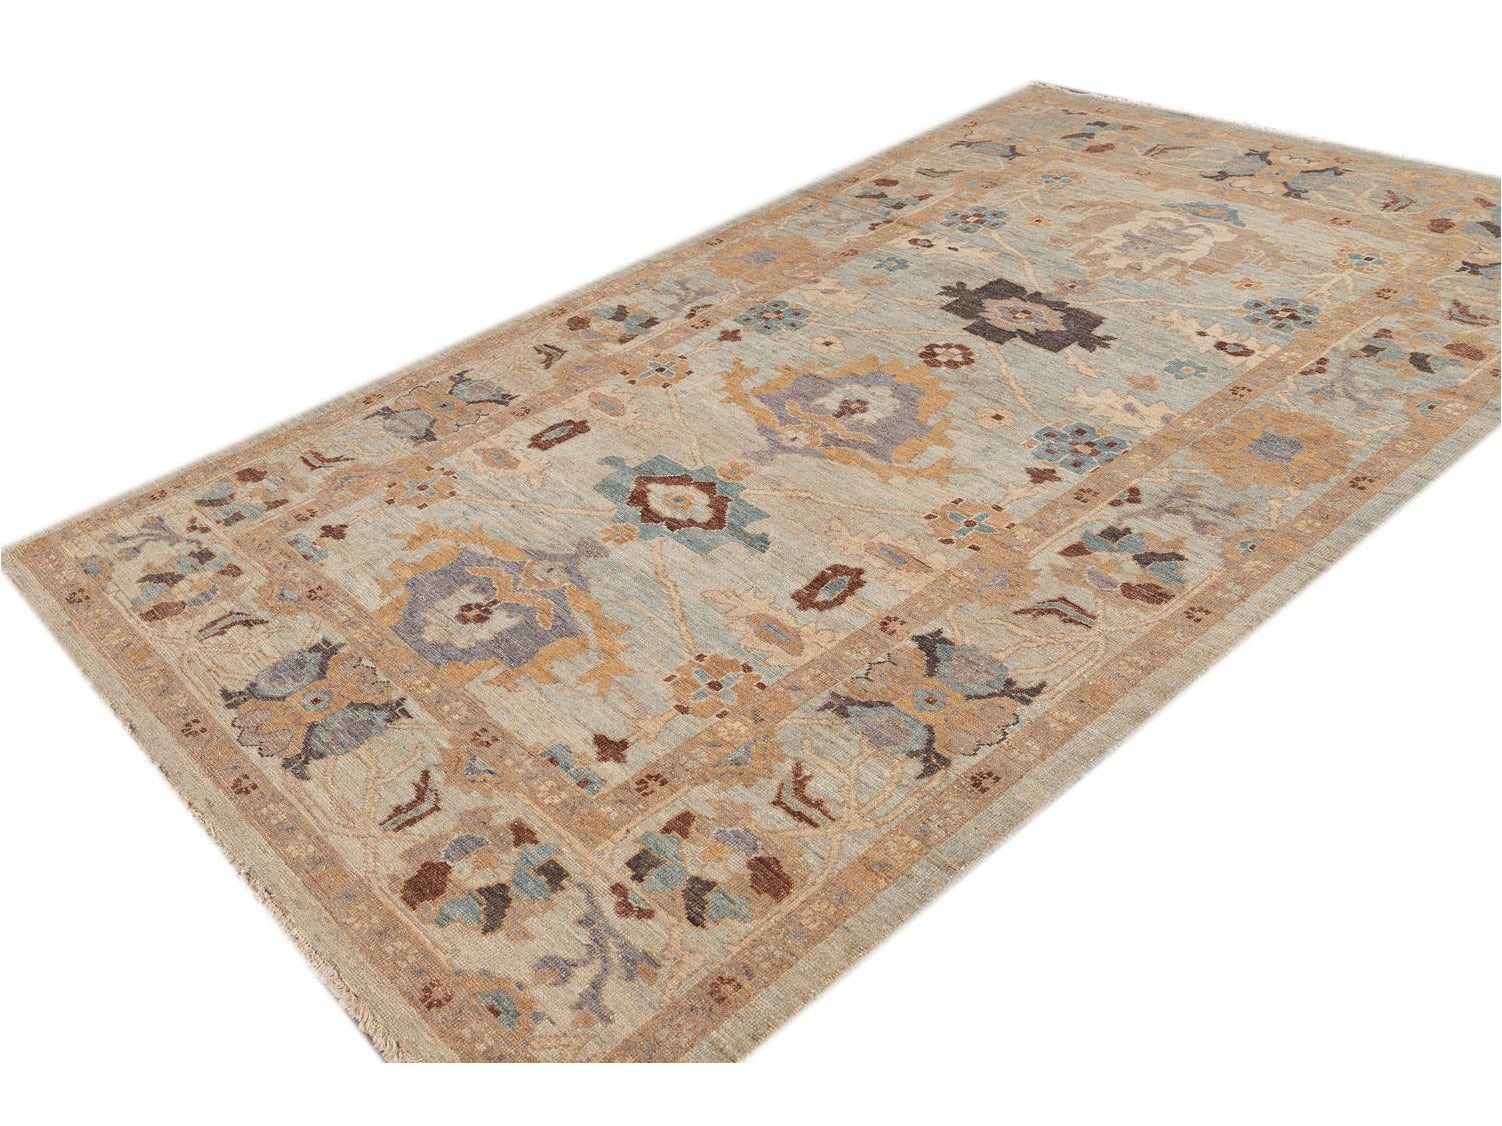 21st Century Modern Sultanabad Square Wool Rug 6 X 10